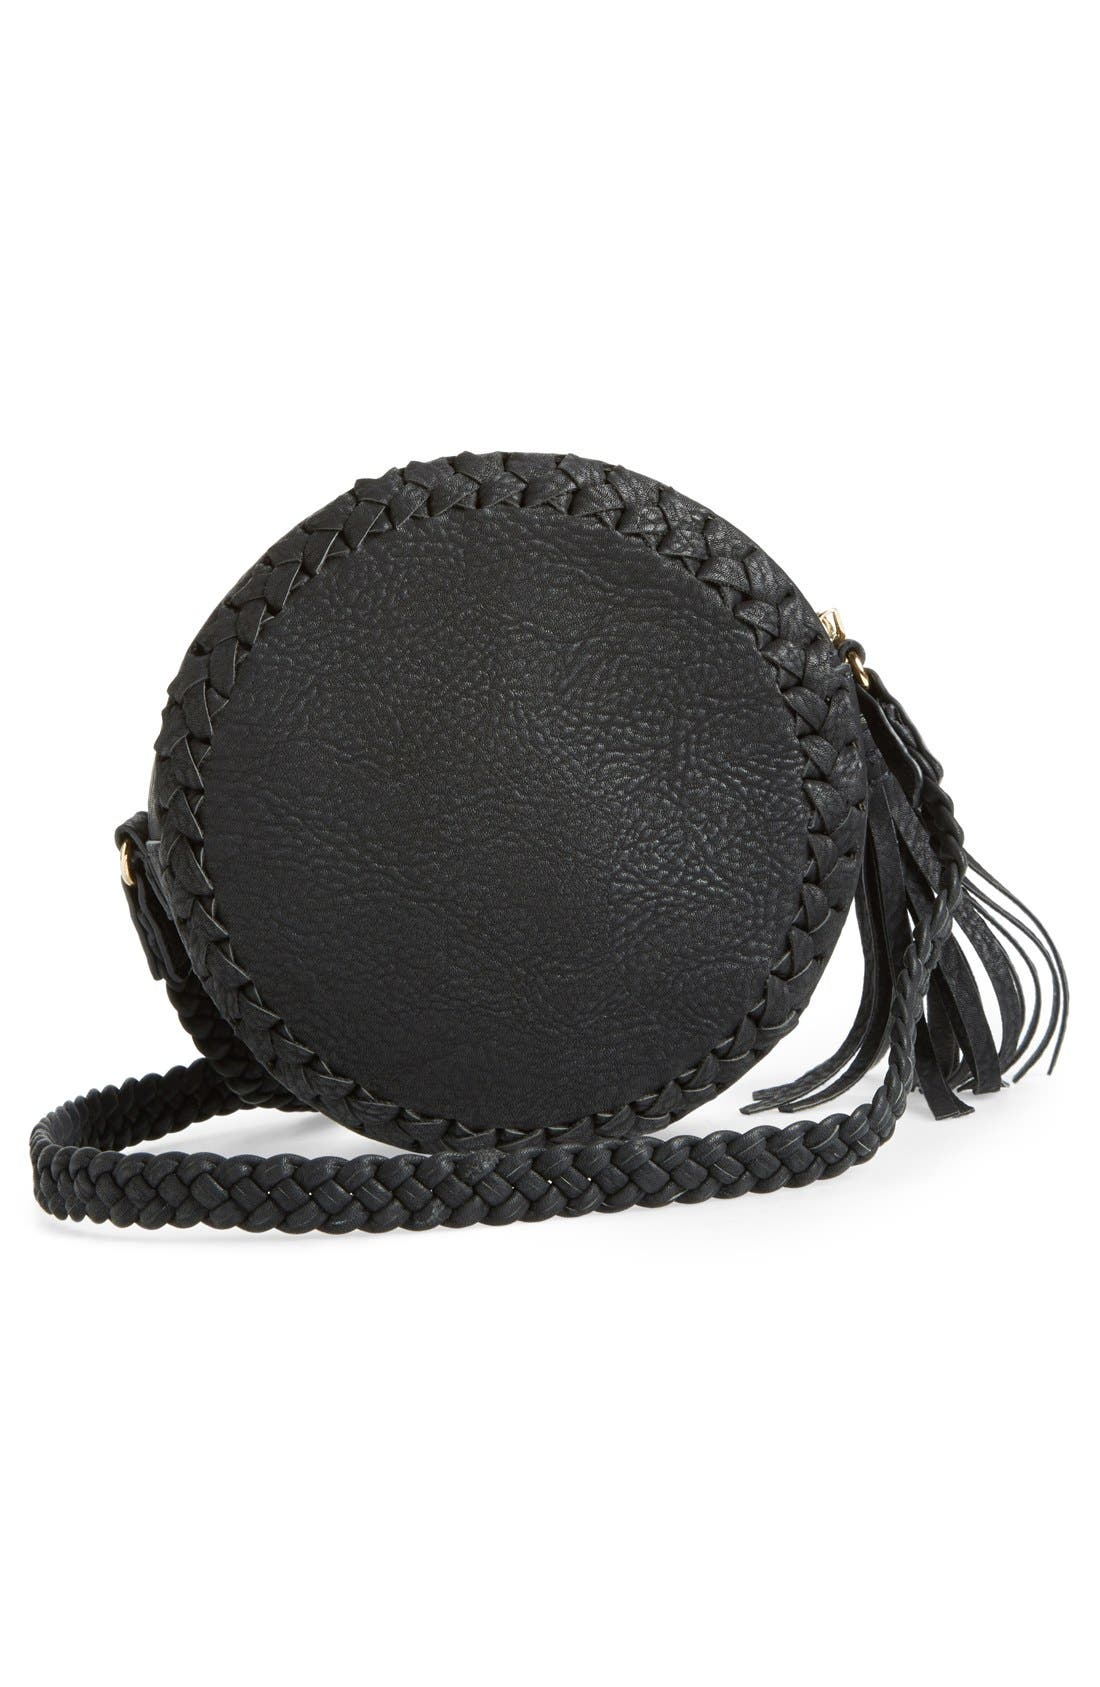 Faux Leather Round Crossbody Bag,                             Alternate thumbnail 5, color,                             001